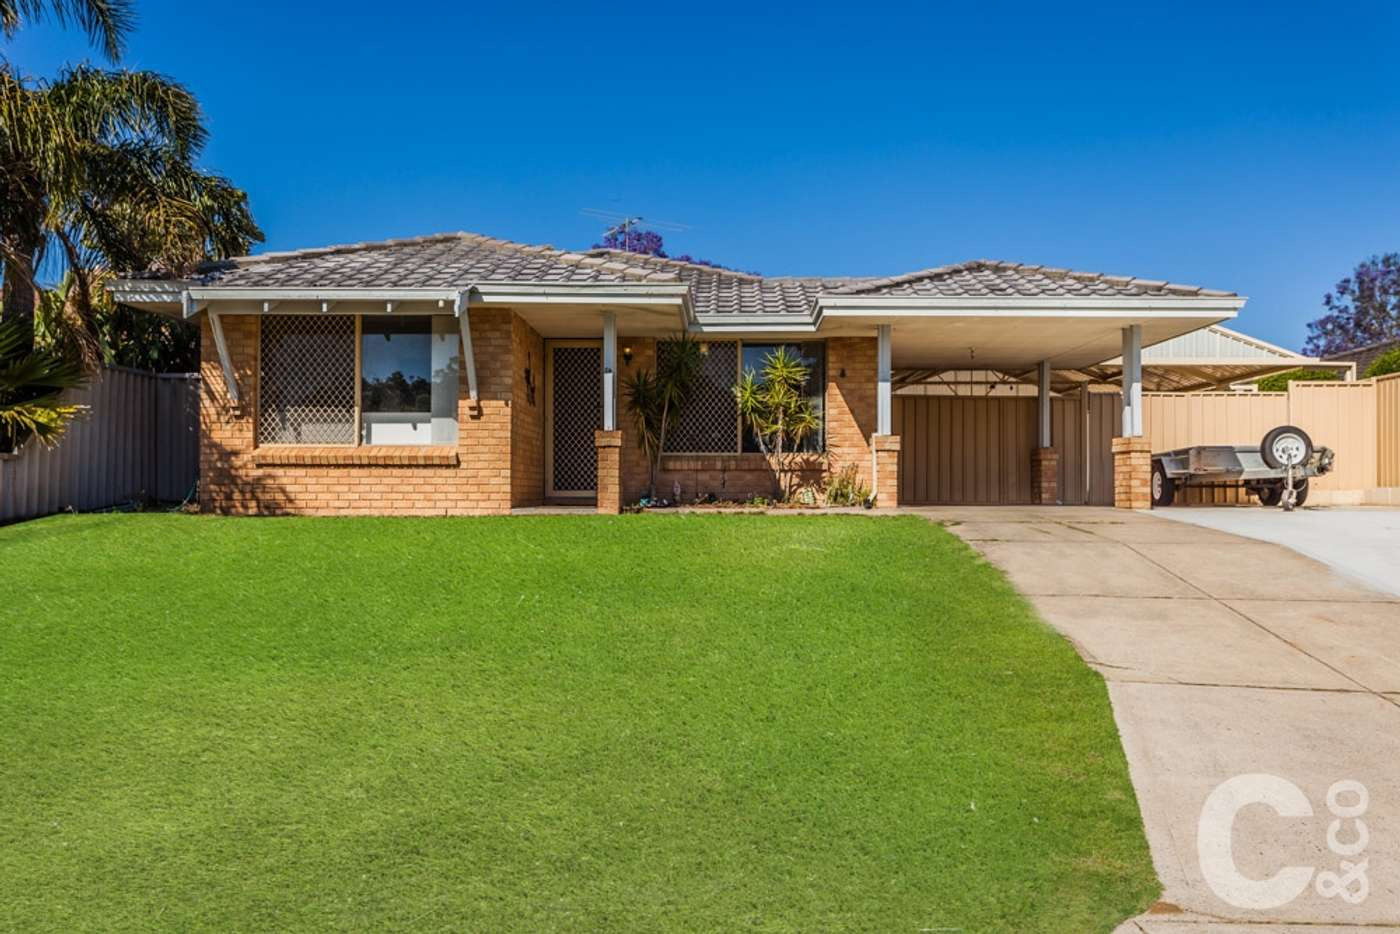 Main view of Homely house listing, 74 Perham Crescent, Leda WA 6170